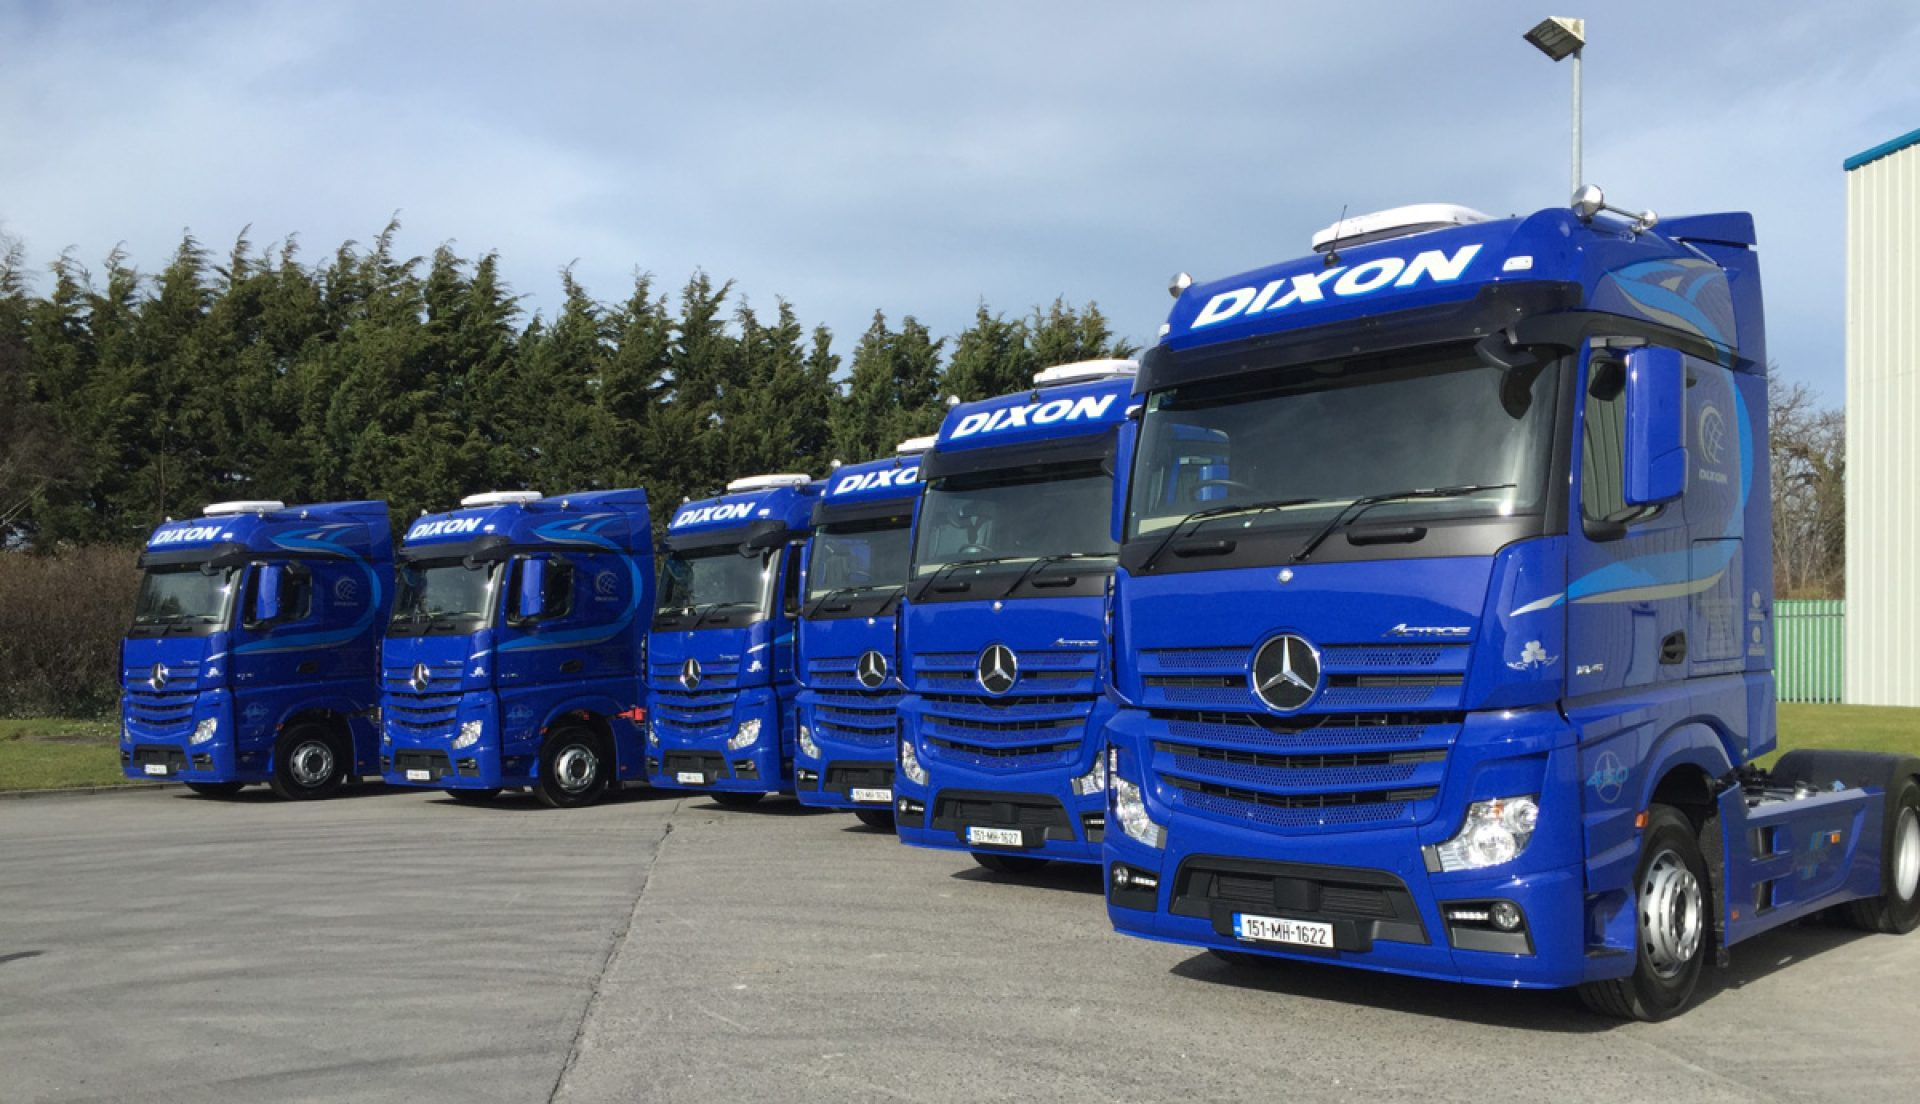 81d8601477 Our fleet - Dixon Transport International - Dixon Transport ...